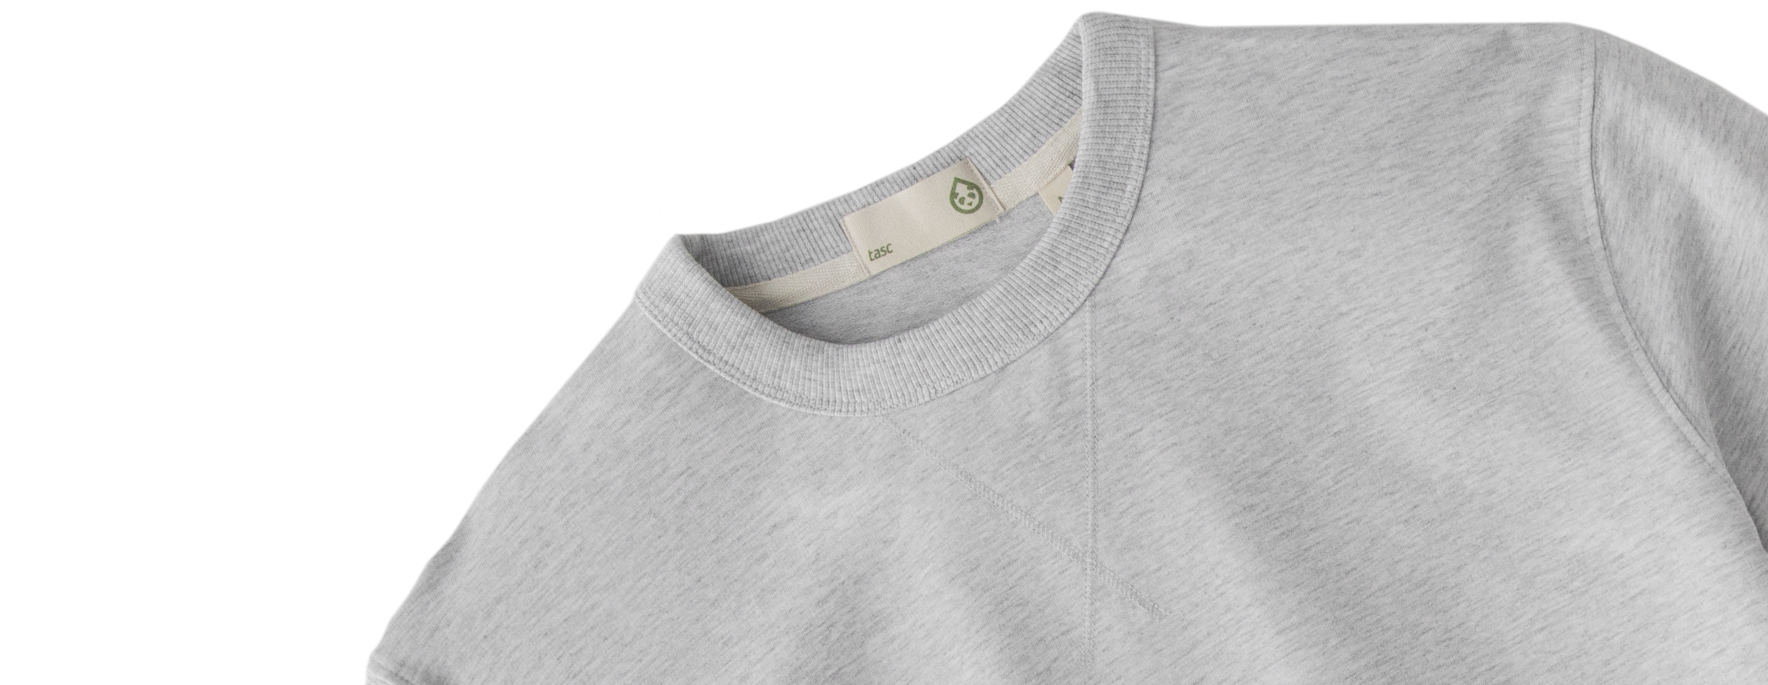 french terry clothing for men and women